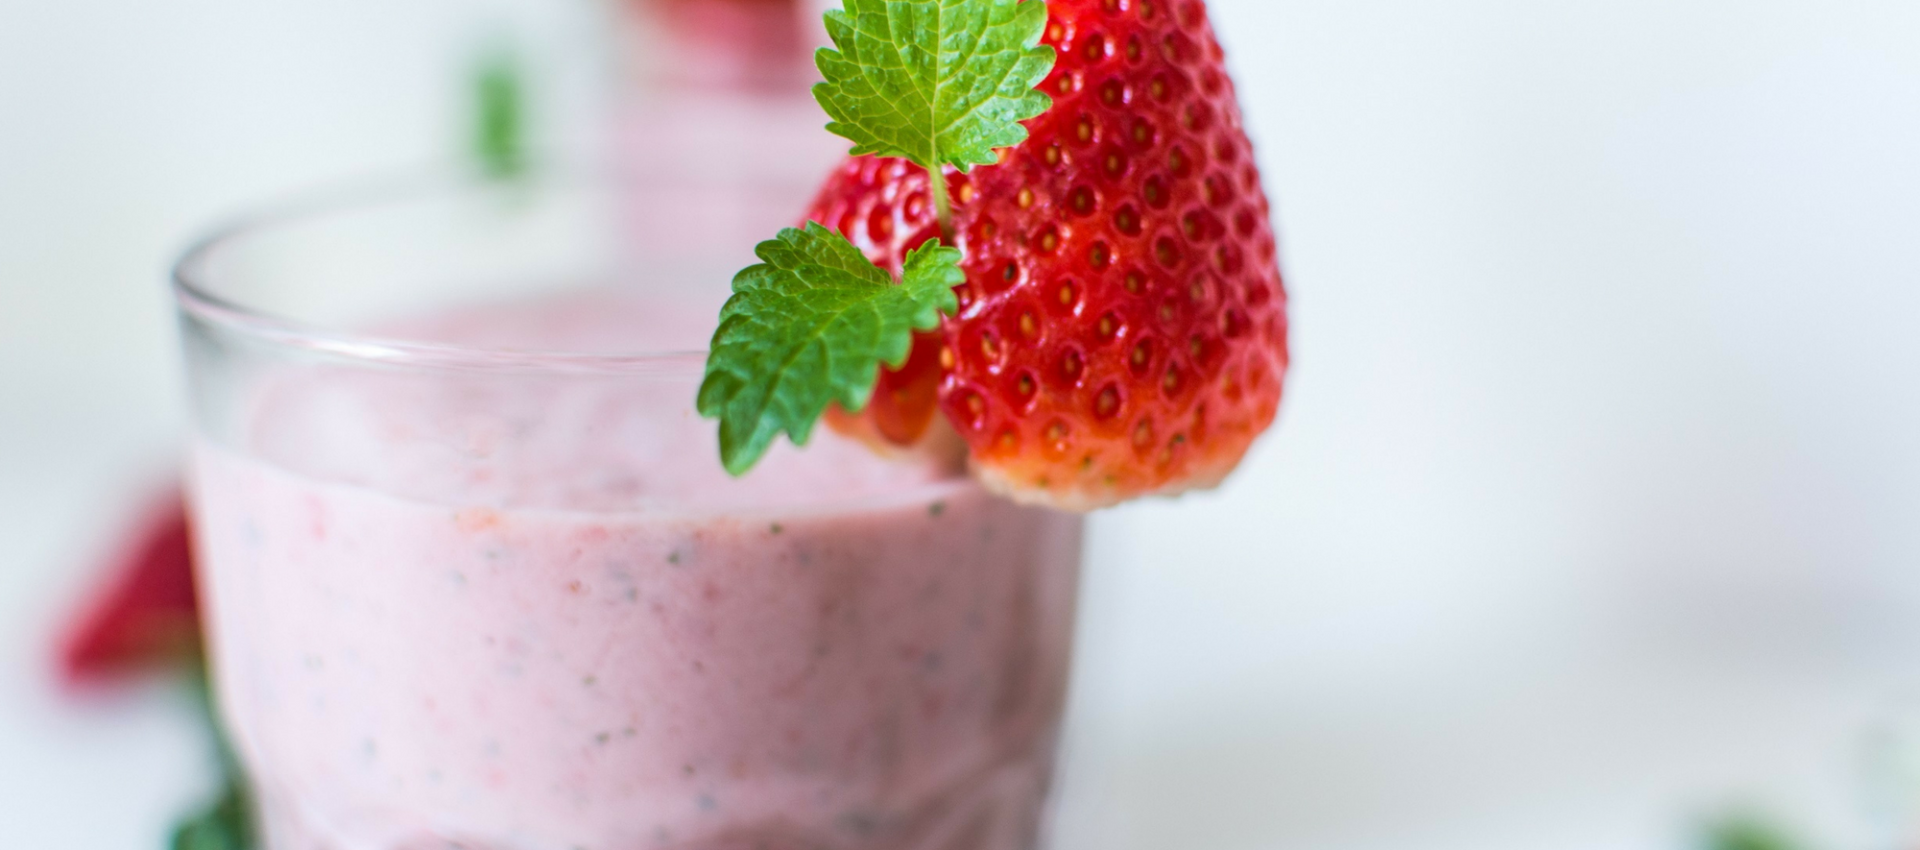 strawberry and banana thickie - healthy oats smoothie by Saucepan Kids